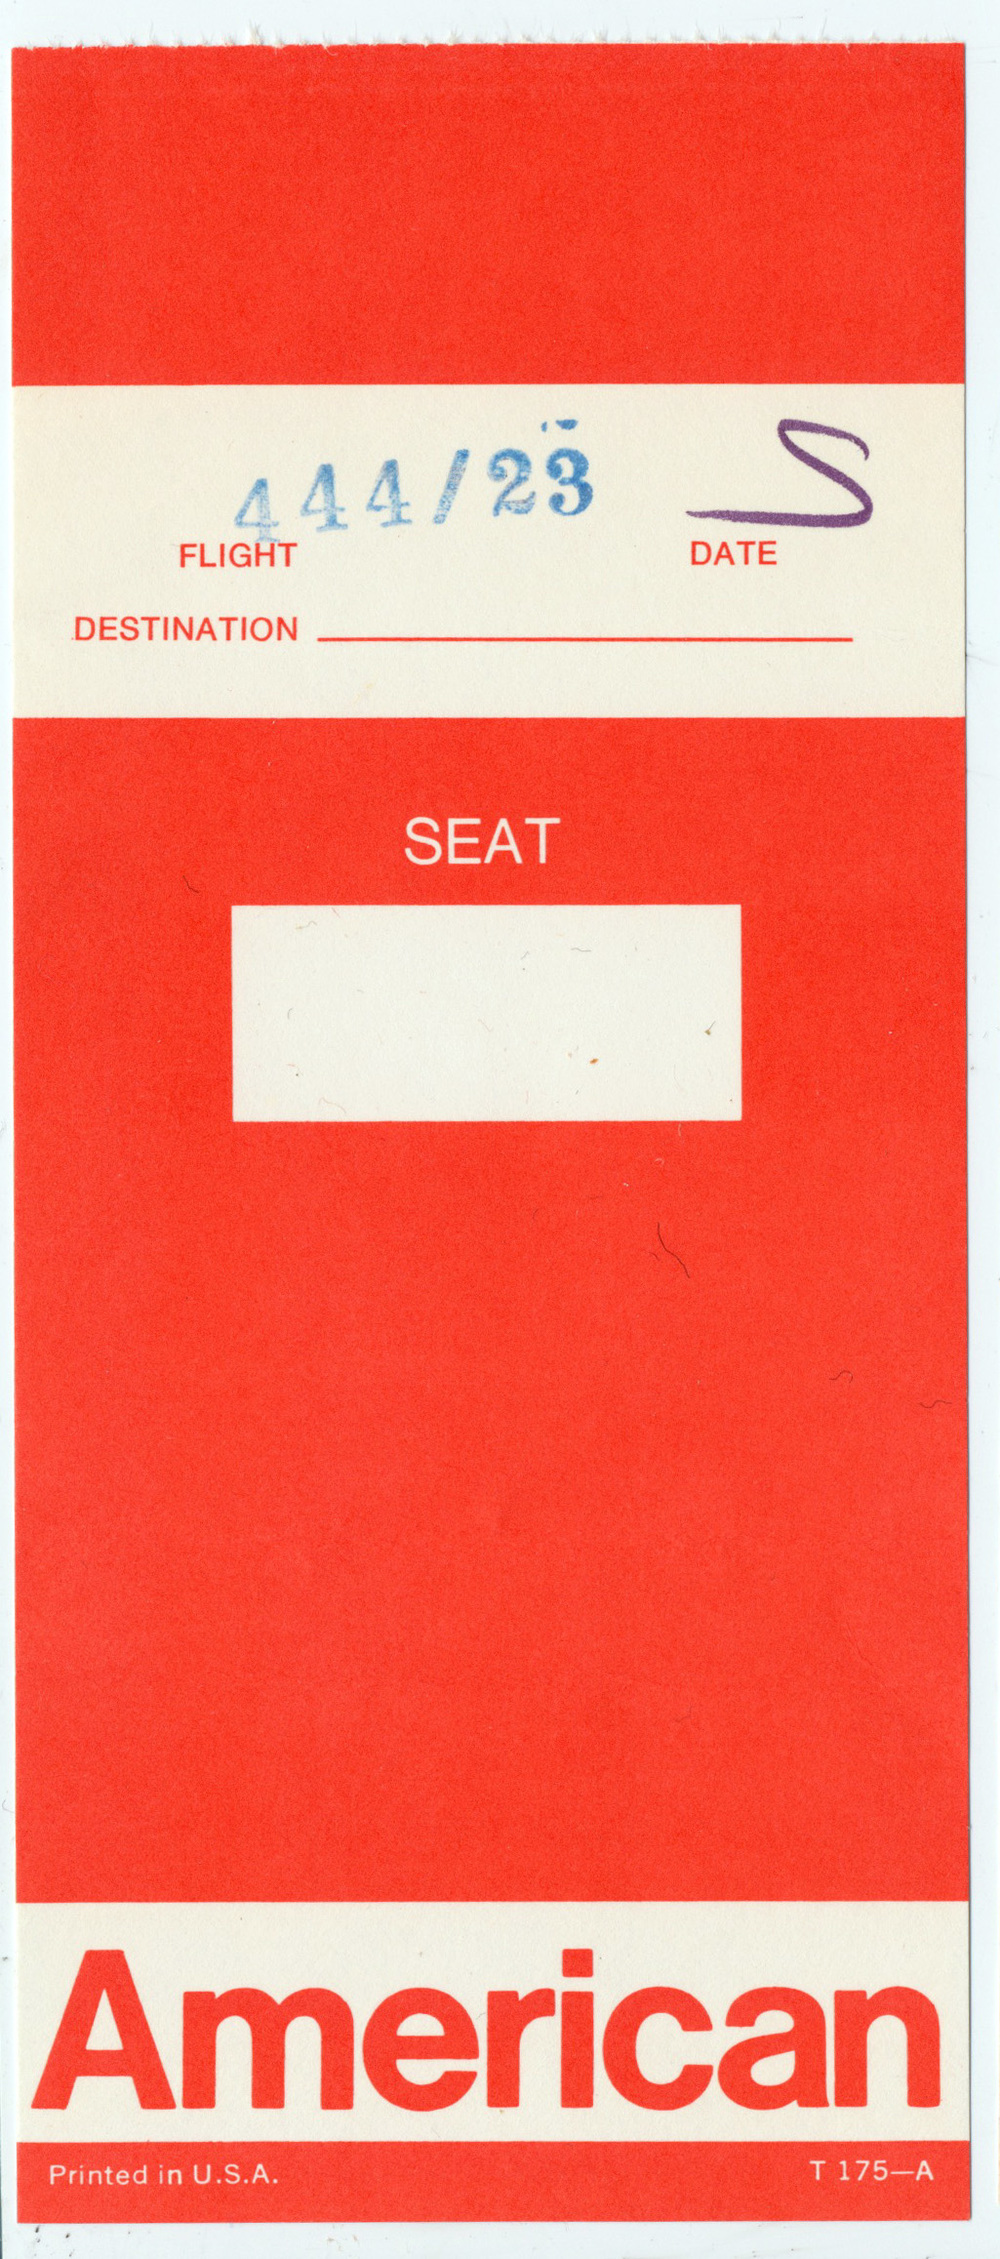 Who doesn't love old boarding passes? They used to look so cool.